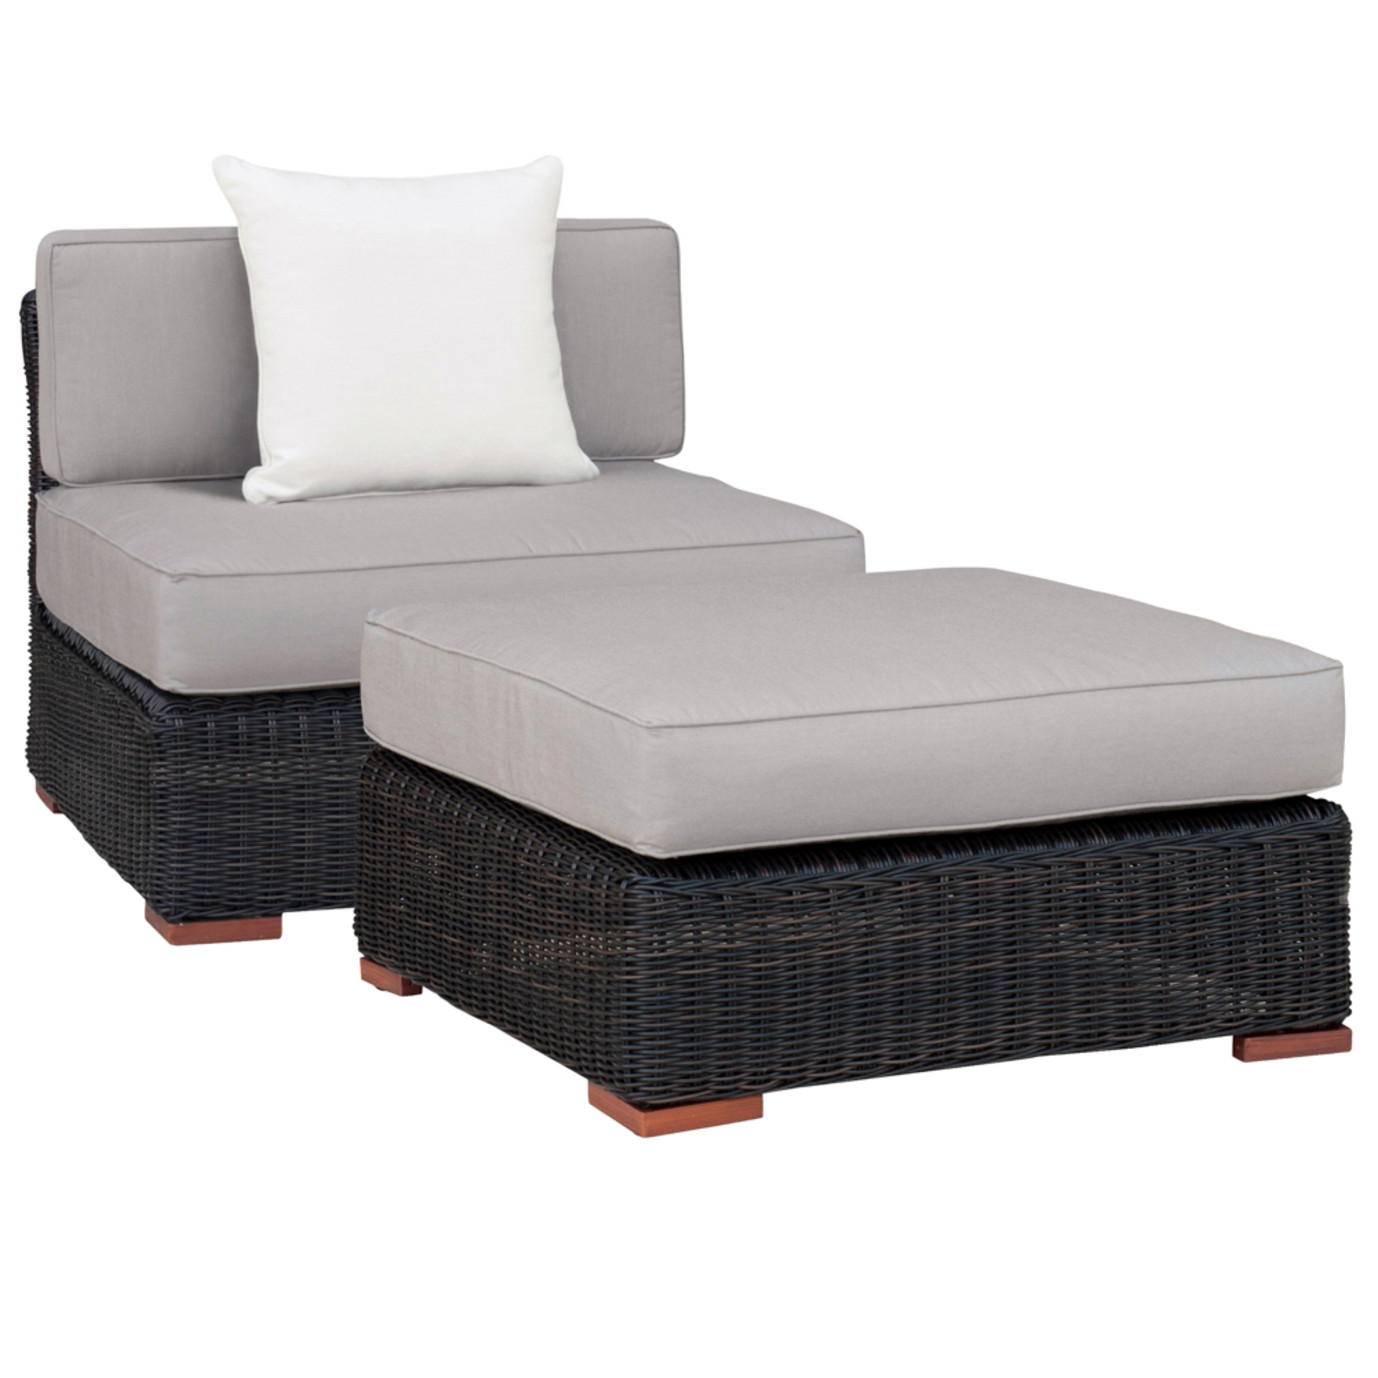 Resort Armless Chair and Large Ottoman Set - Frank Stone